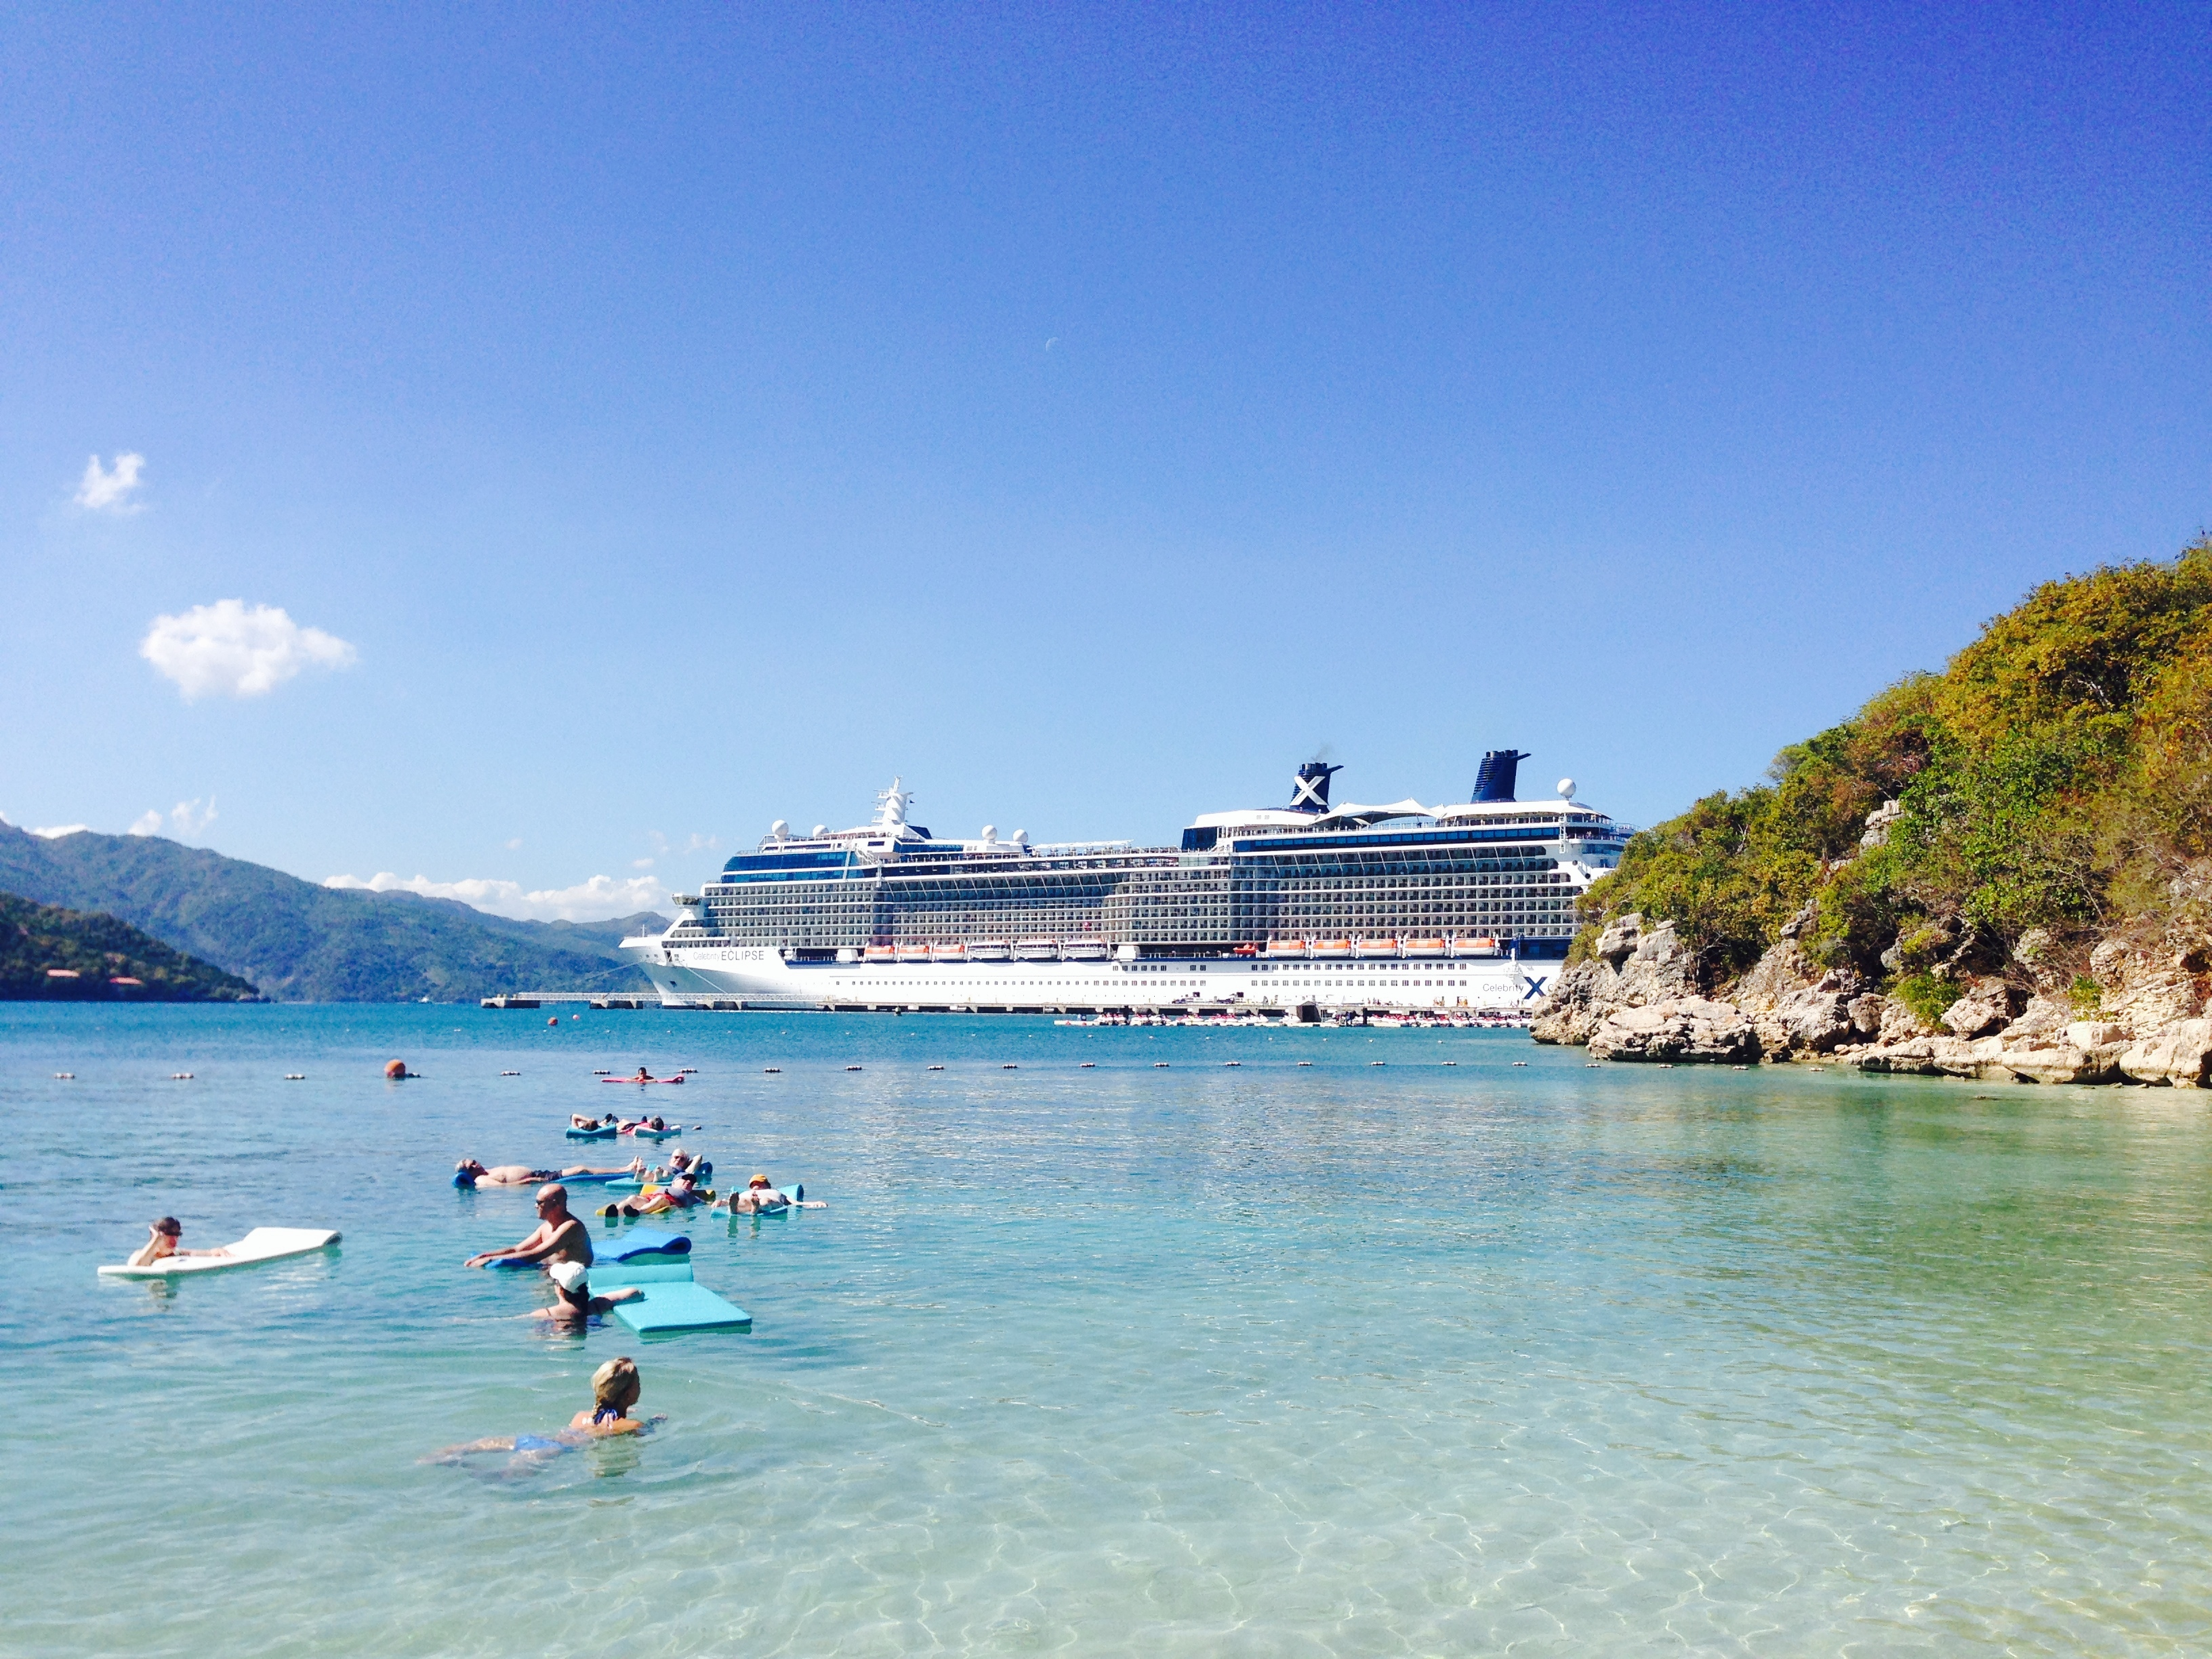 12 Best Cruise Lines in the Caribbean - U.S. News Travel